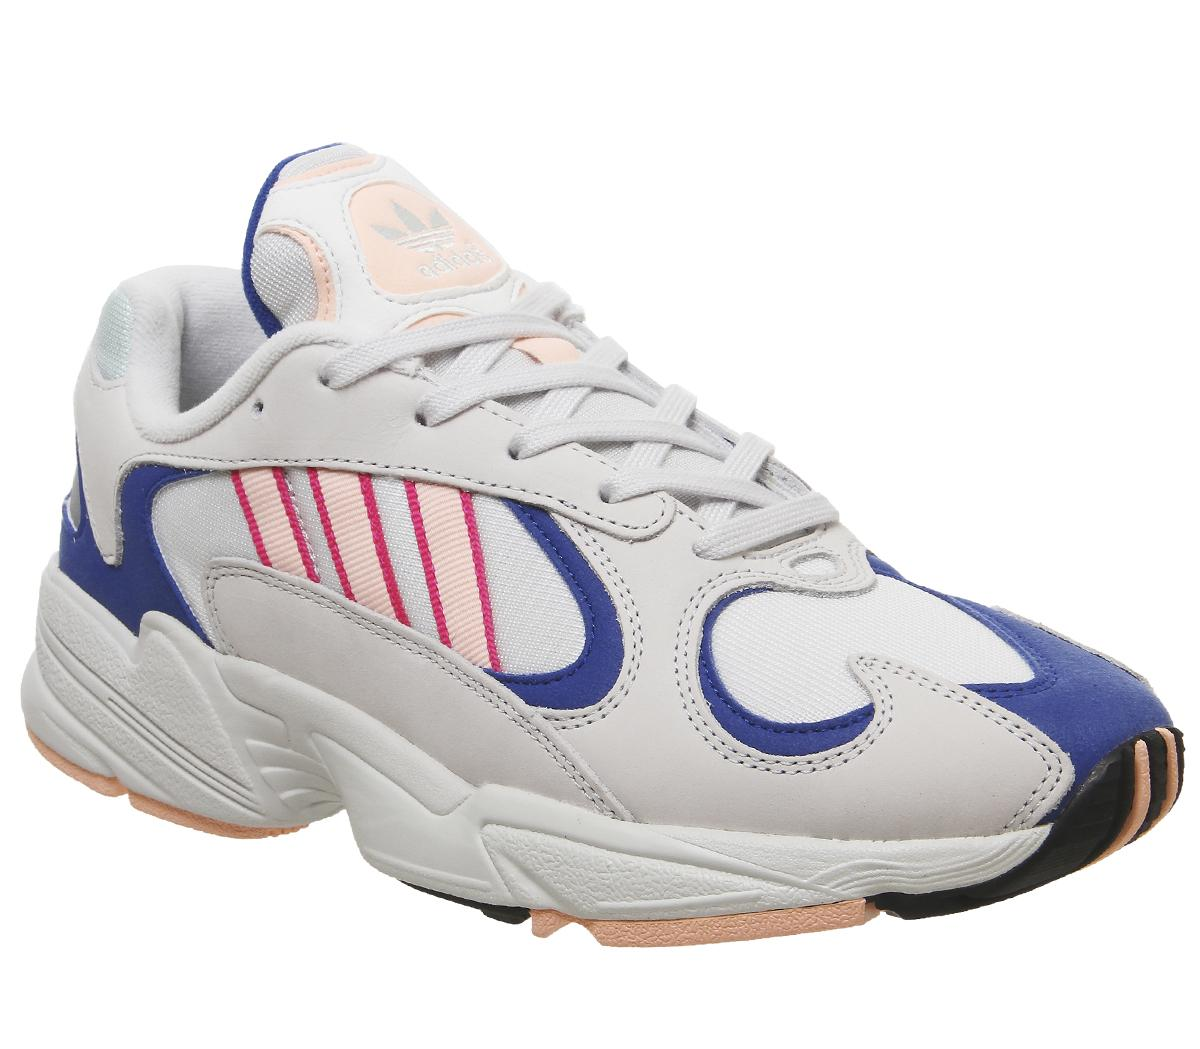 primer ministro Cristo Iniciar sesión  adidas Yung 1 Trainers Crystal White Clear Orange Collegiate Royal - Unisex  Sports